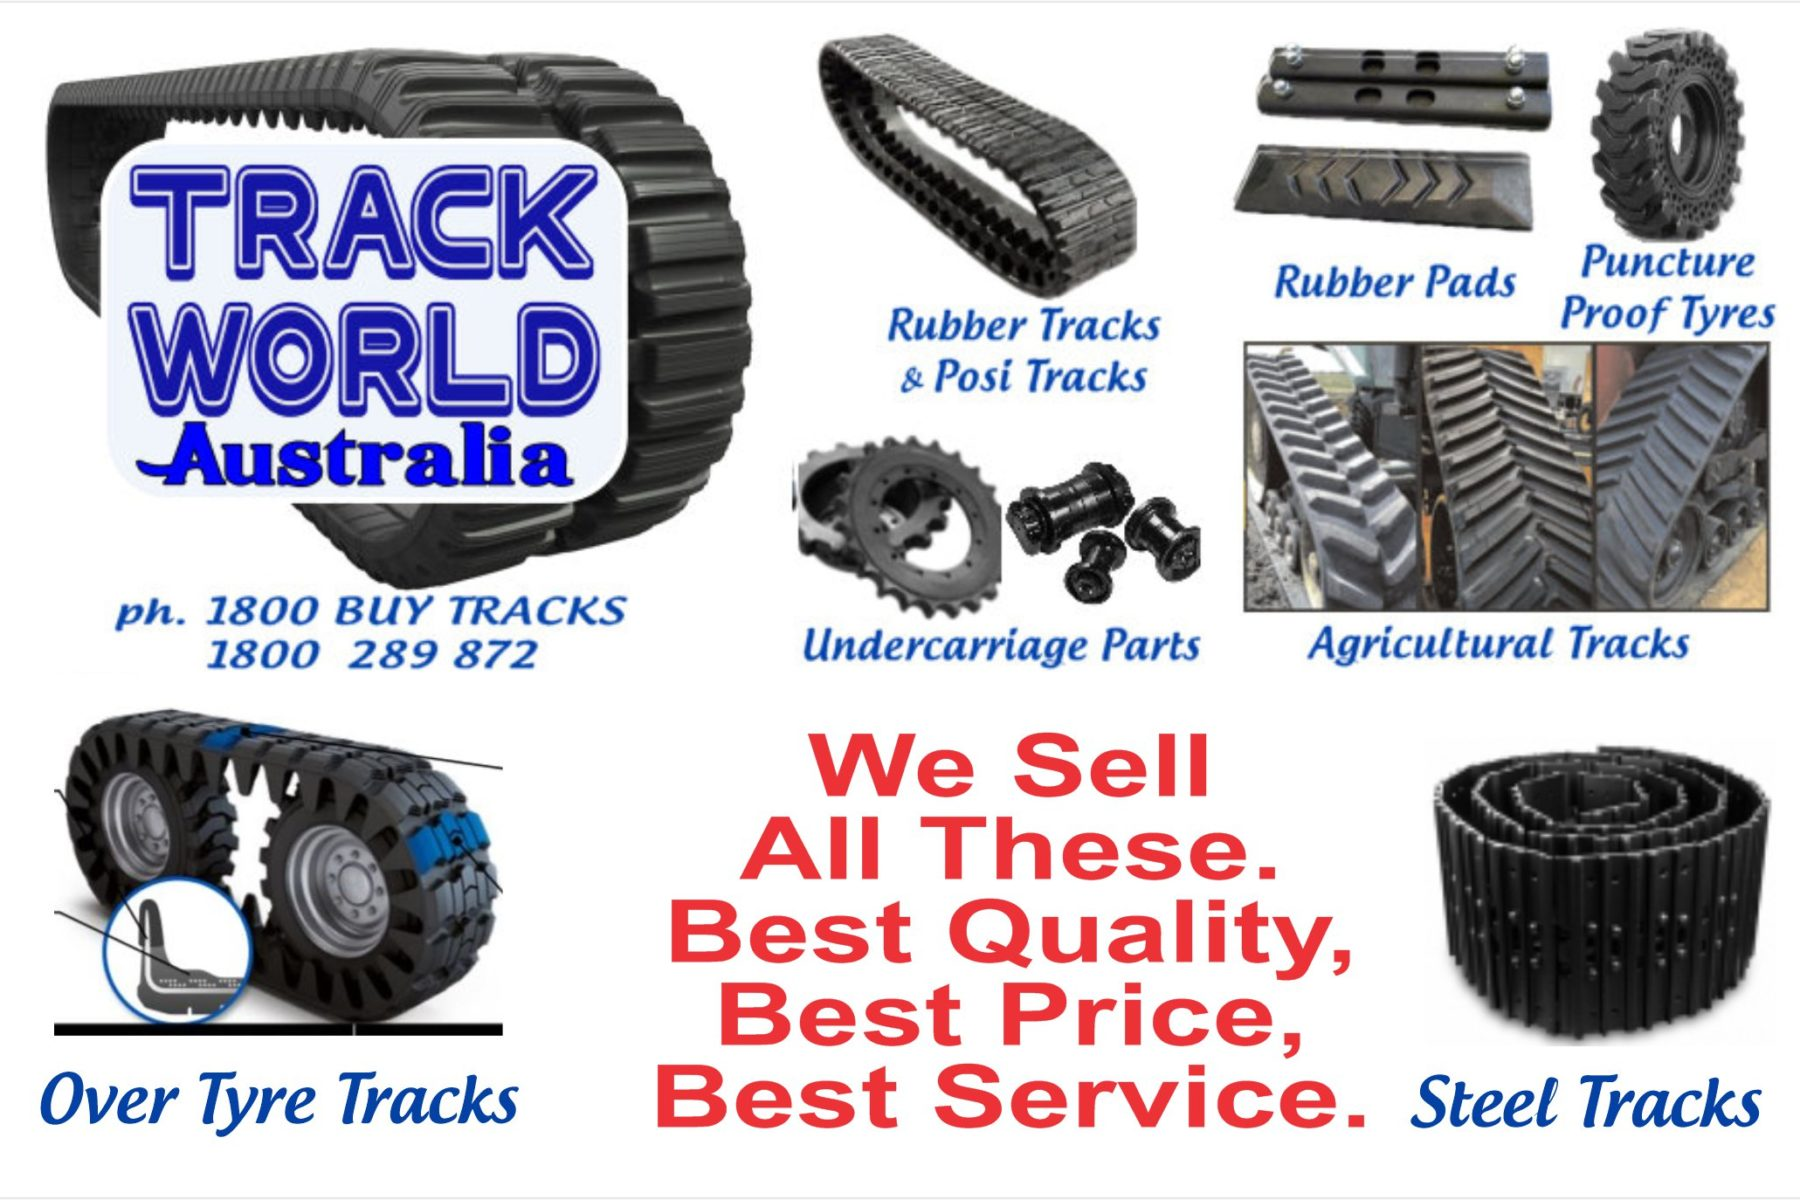 Track World Australia supplies only quality rubber tracks for Ag Tractors, excavators & loaders. We have high quality rubber 'bolt on' & 'clamp on' Pads for steel tracks, puncture-proof tyres for skid steer loaders, over-tyre tracks for skid steer loaders, track loader tracks, posi-track…